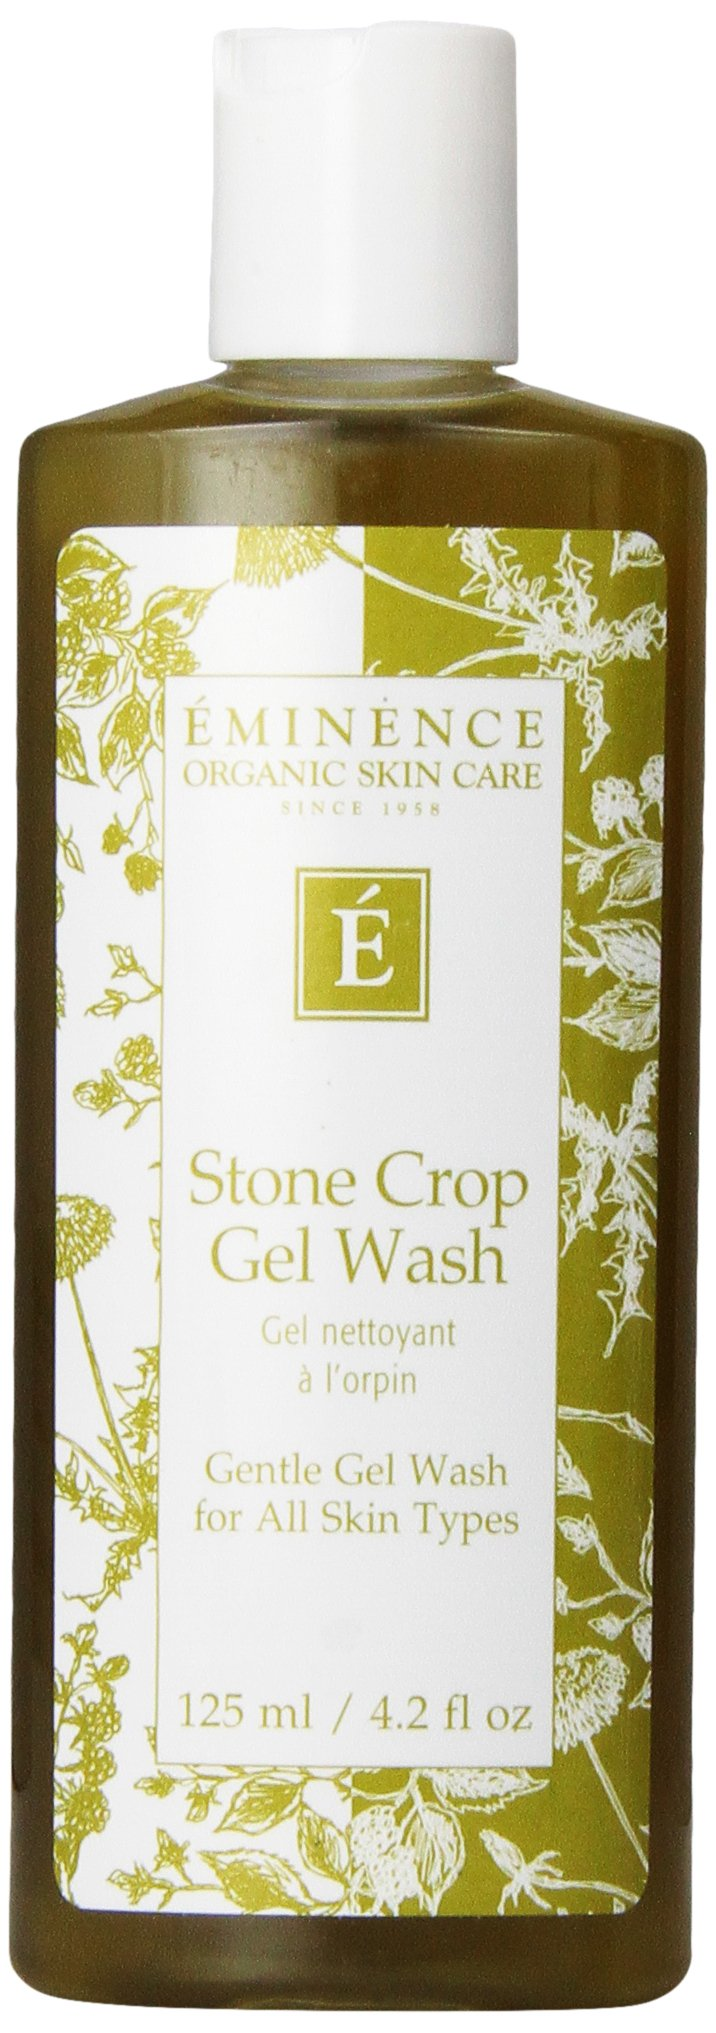 Eminence Stone Crop Gel Wash, 4.2 Fluid Ounce by Eminence (Image #1)